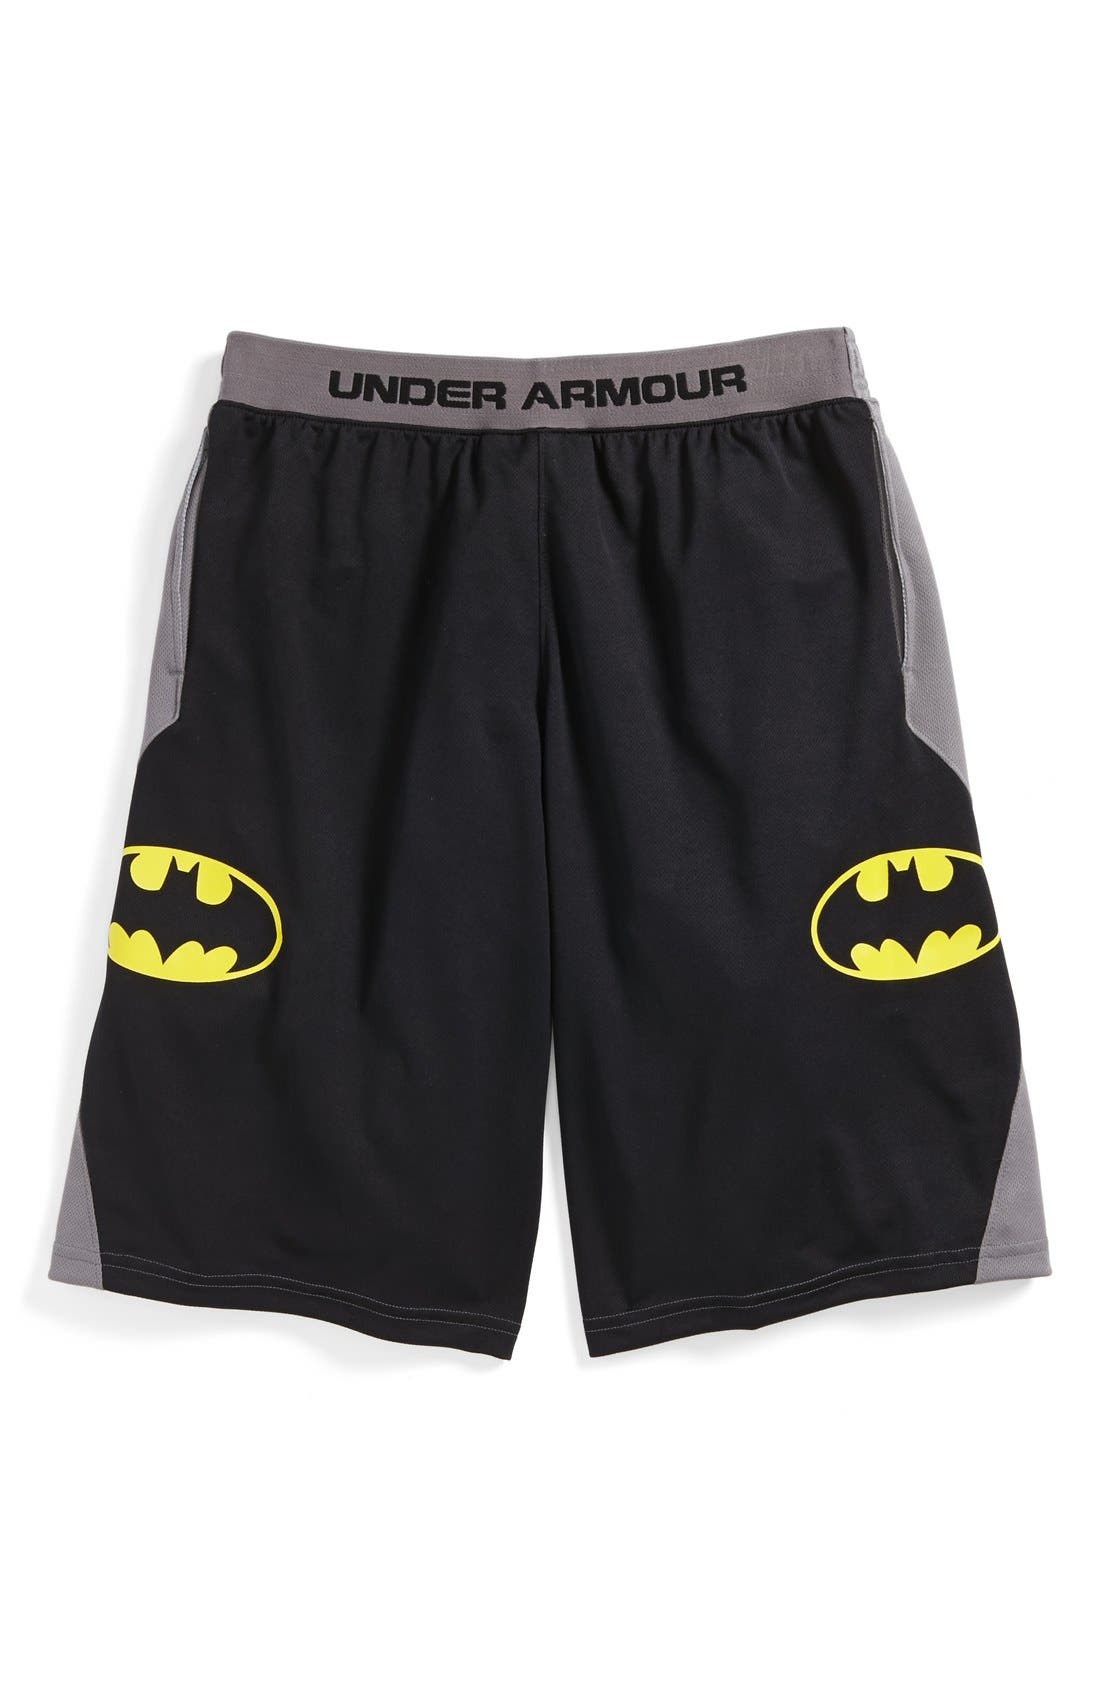 Alternate Image 1 Selected - Under Armour 'Alter Ego - Batman' Shorts (Little Boys & Big Boys)